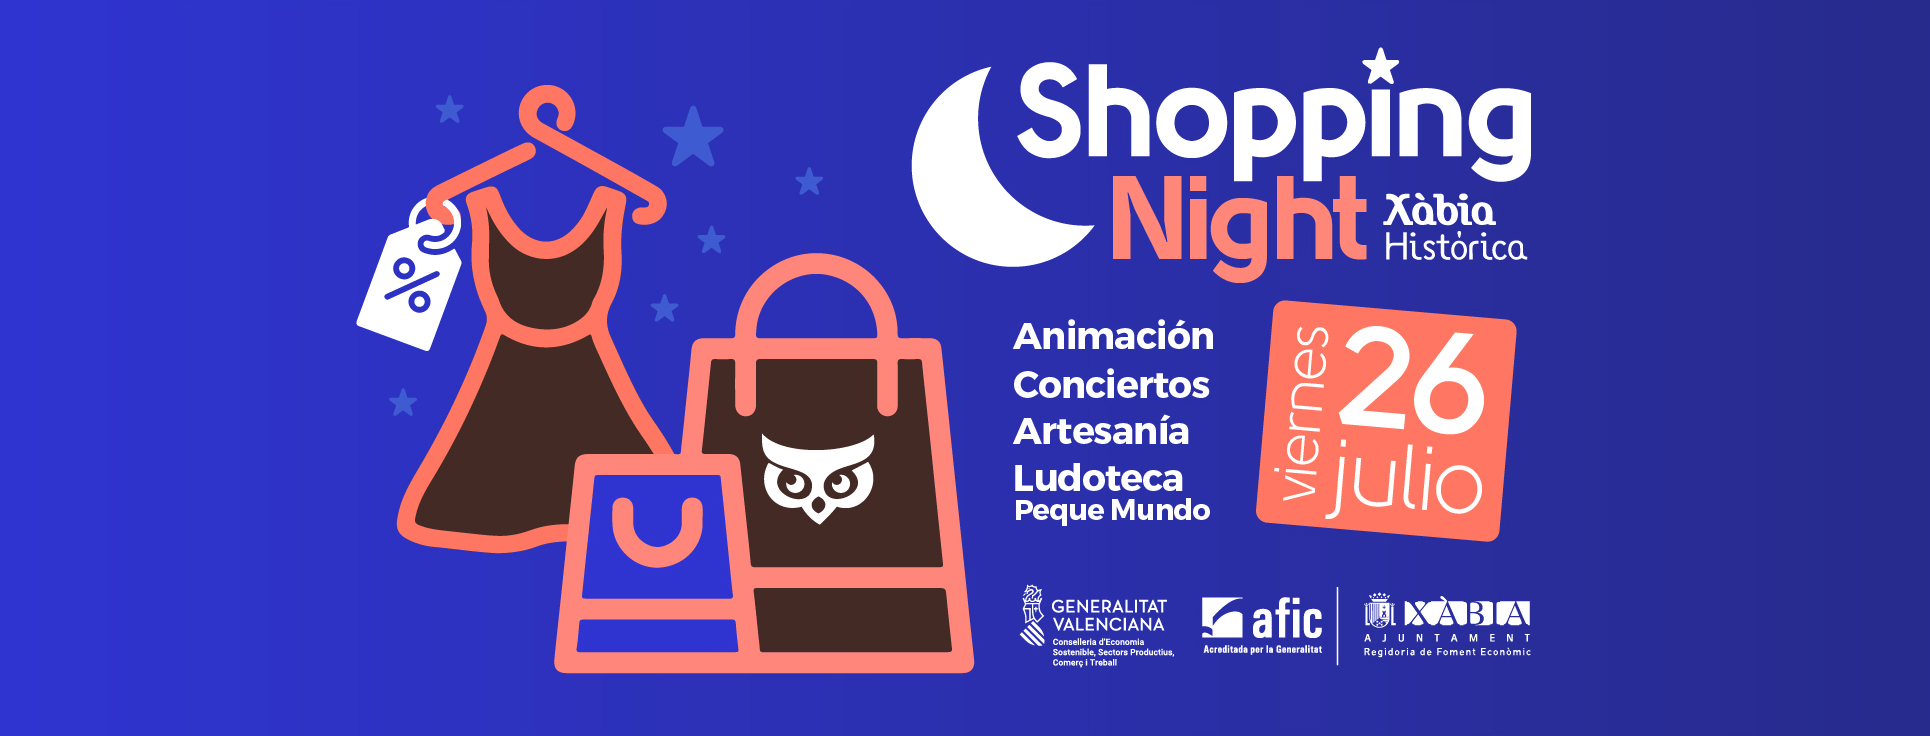 portada face shopping night juliol 2019 xabia historica